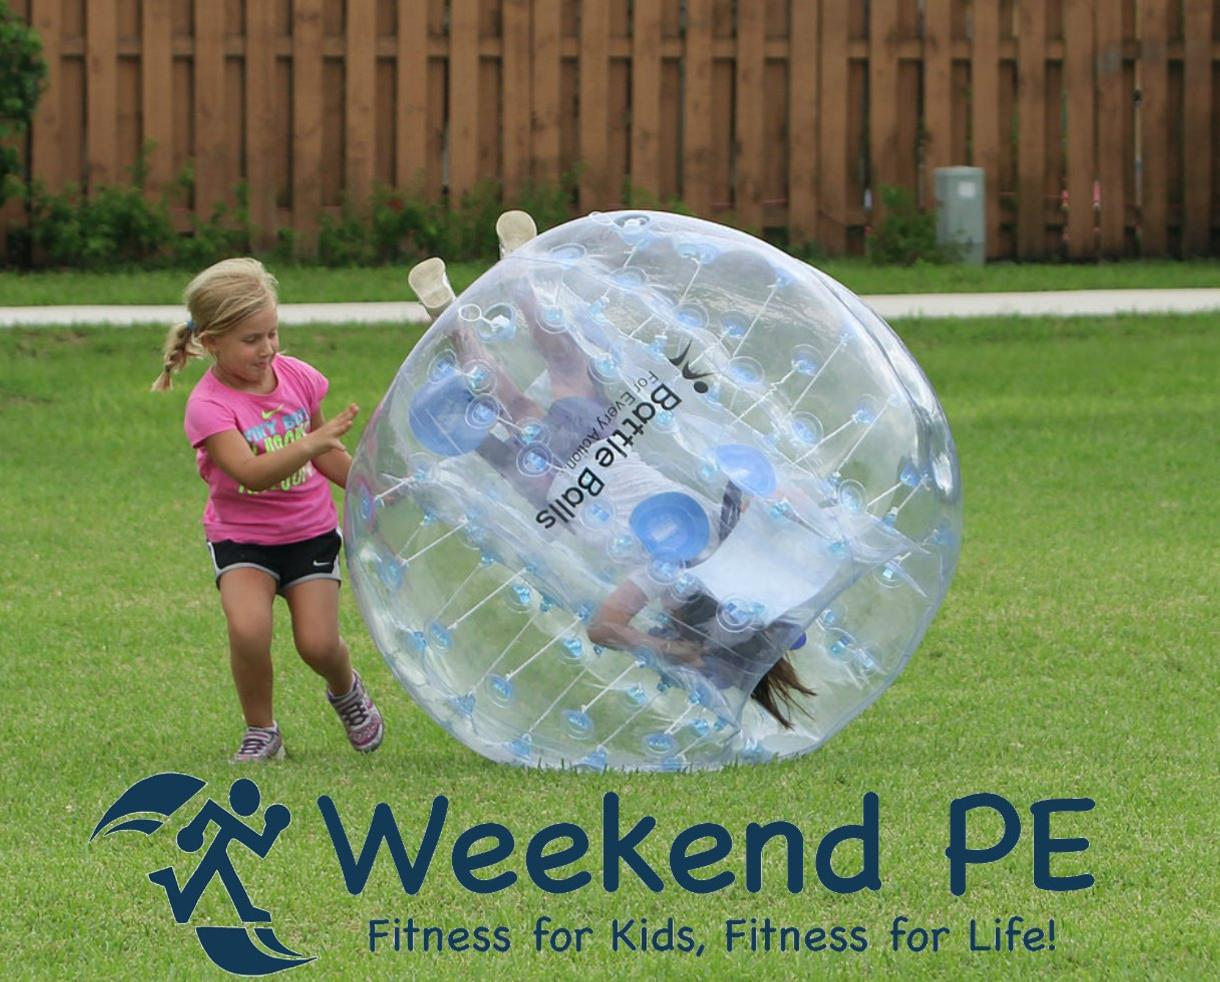 5-Pack of Weekend PE Classes at Tropical Park